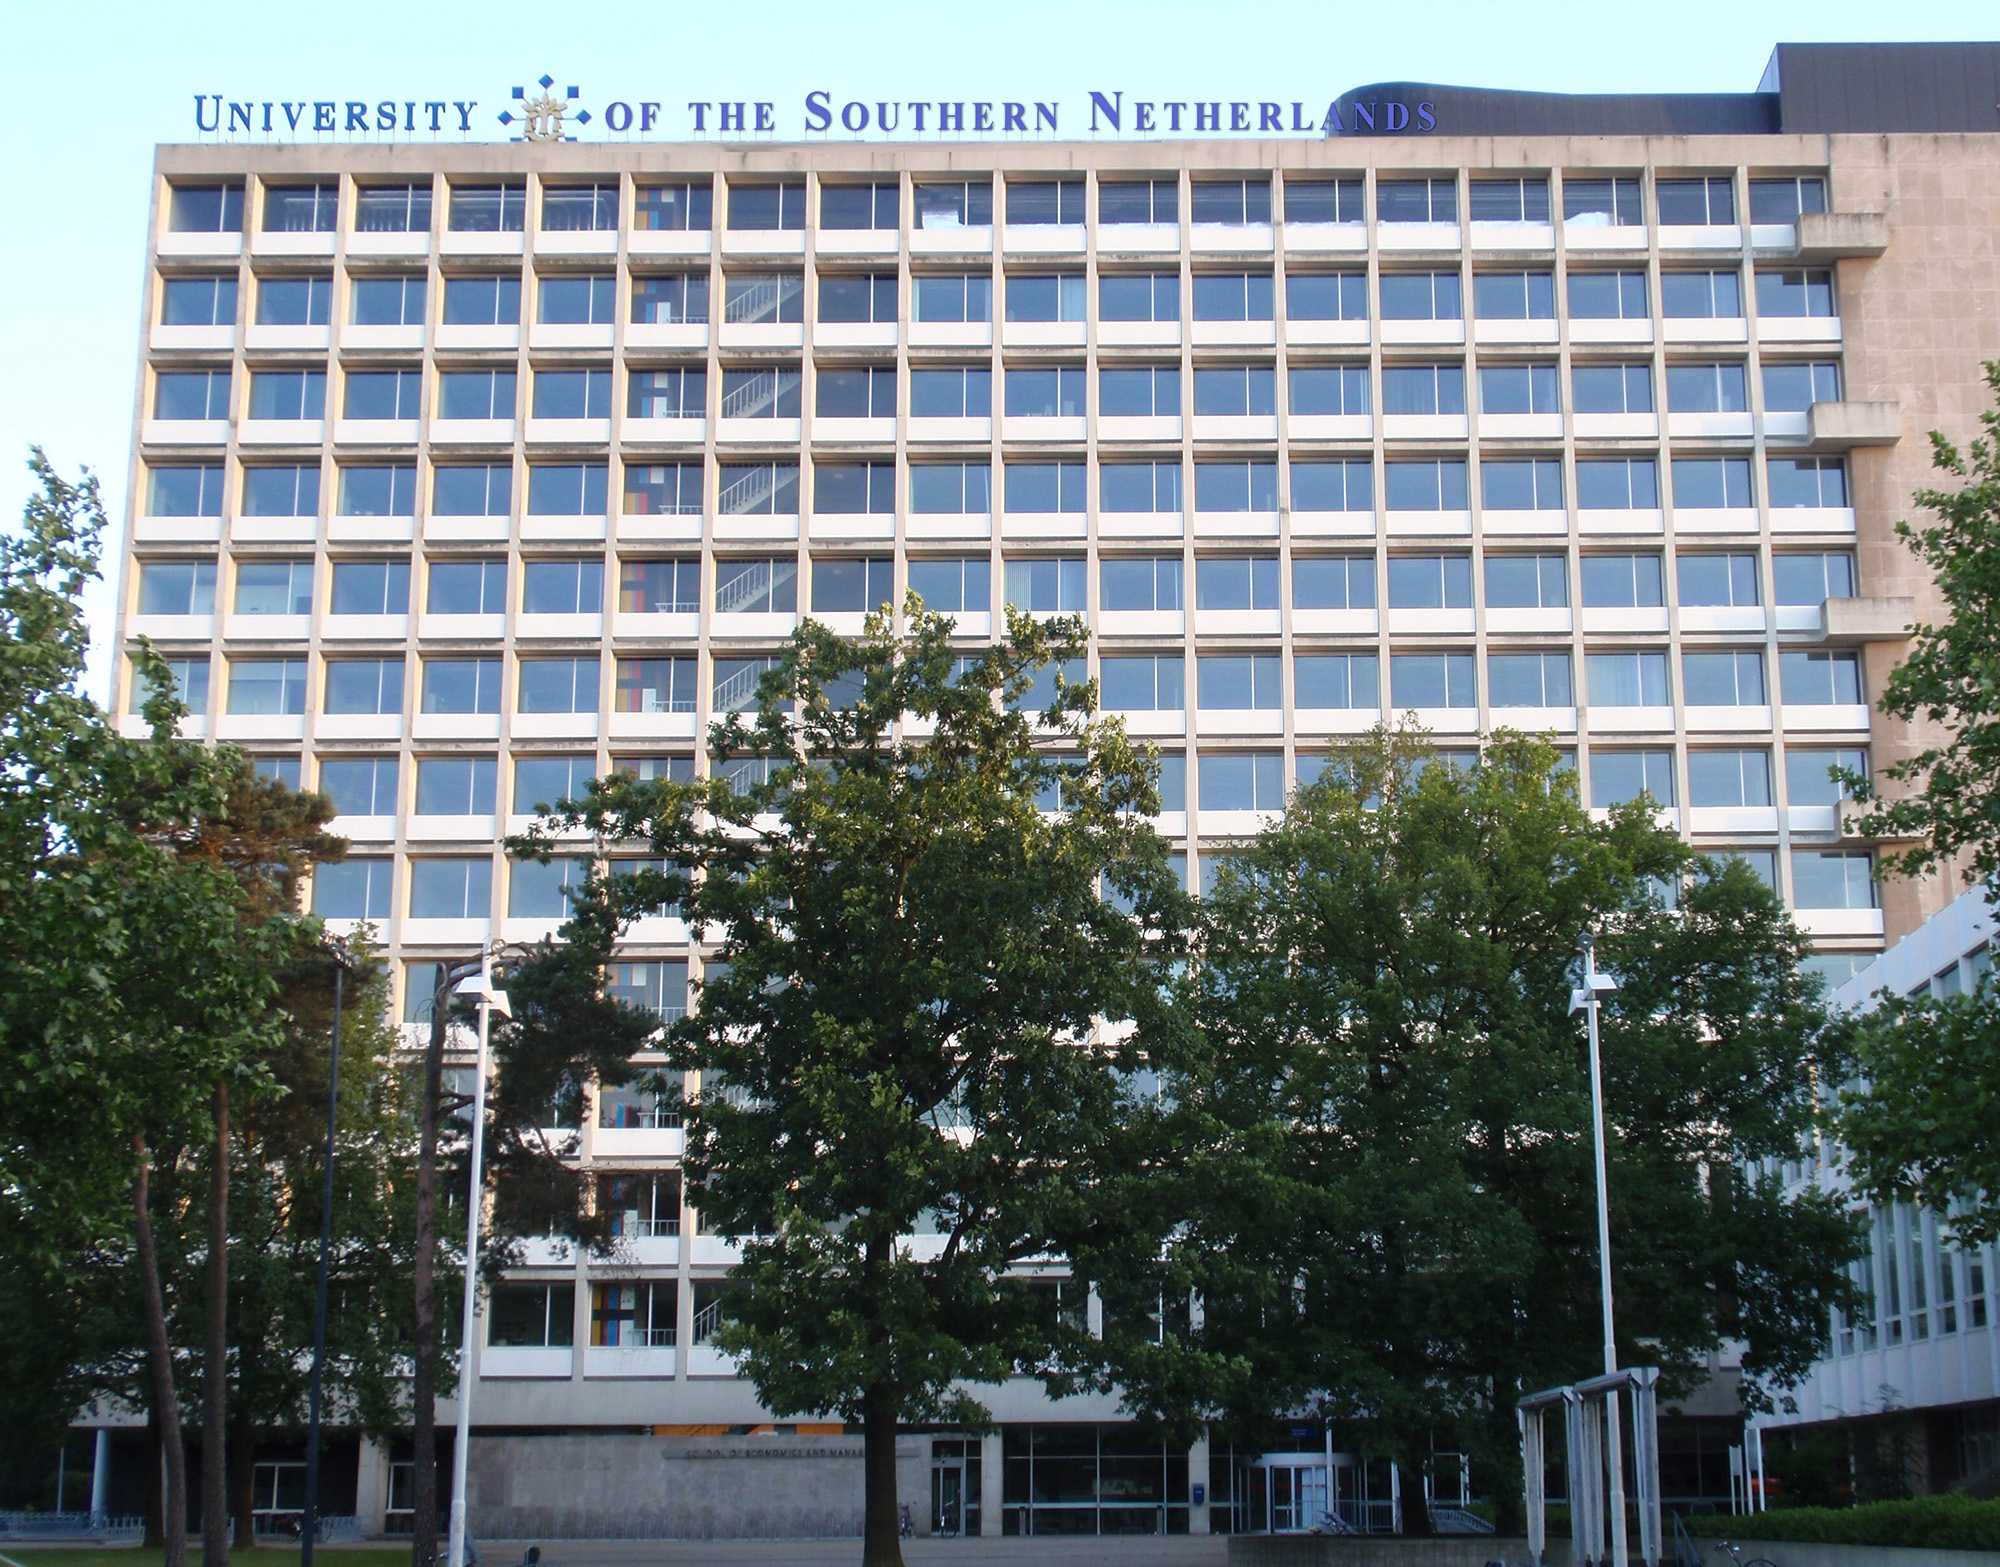 University of the Southern Netherlands